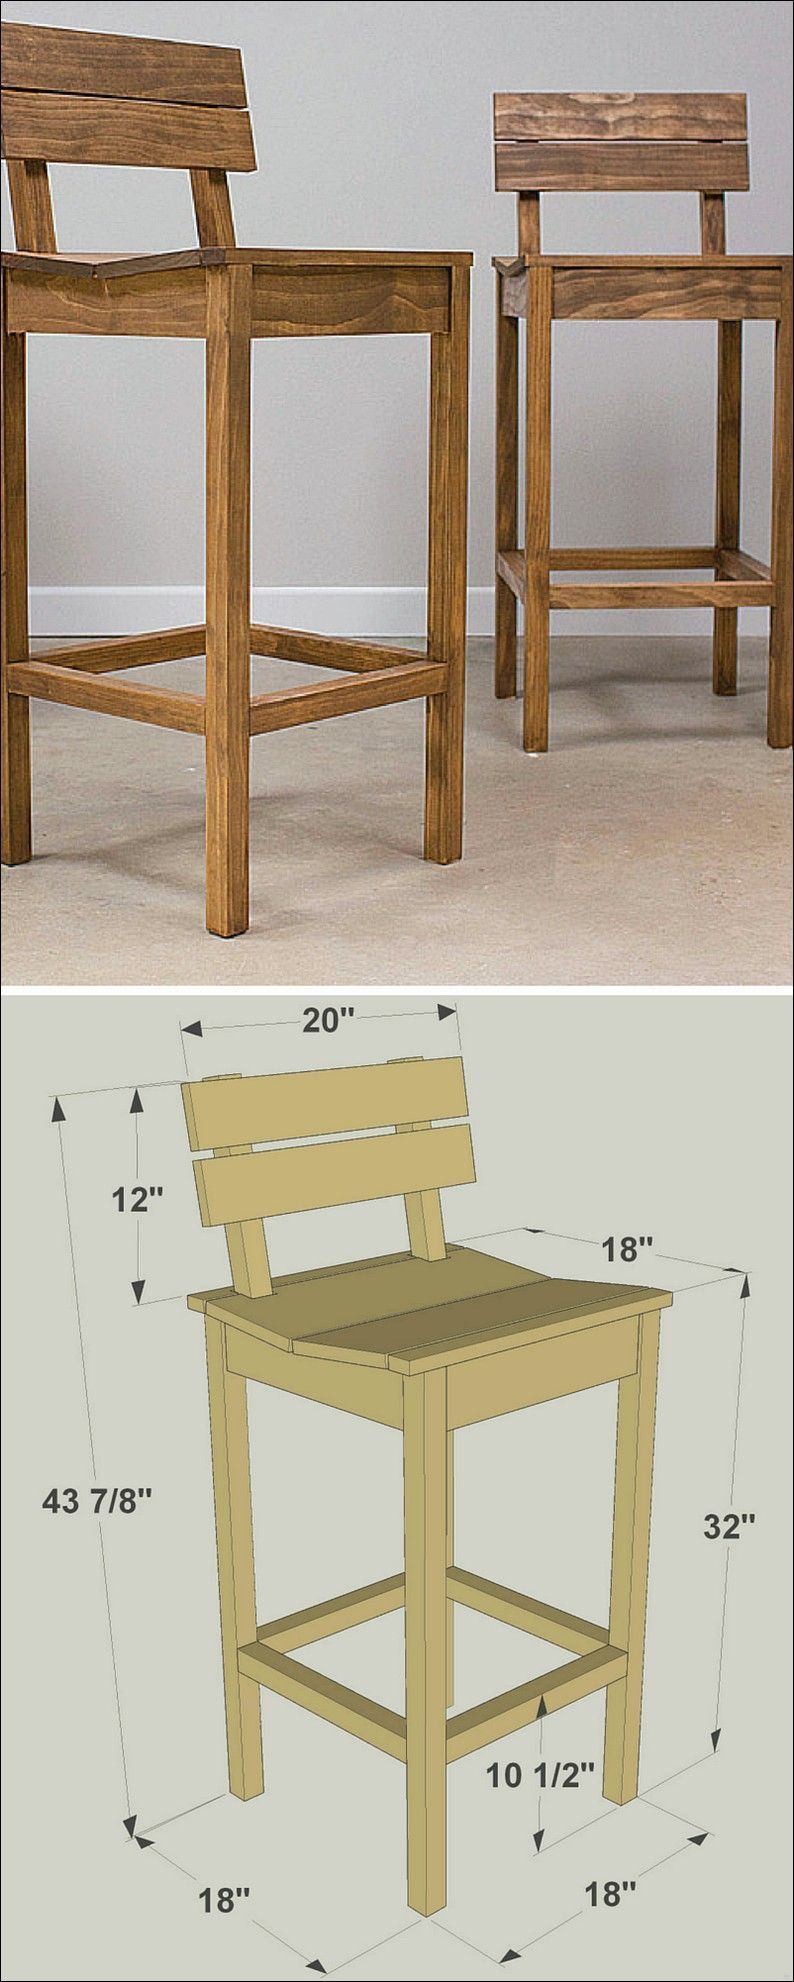 17 Awe Inspiring Wood Working Projects Logs Ideas Pub Chairs